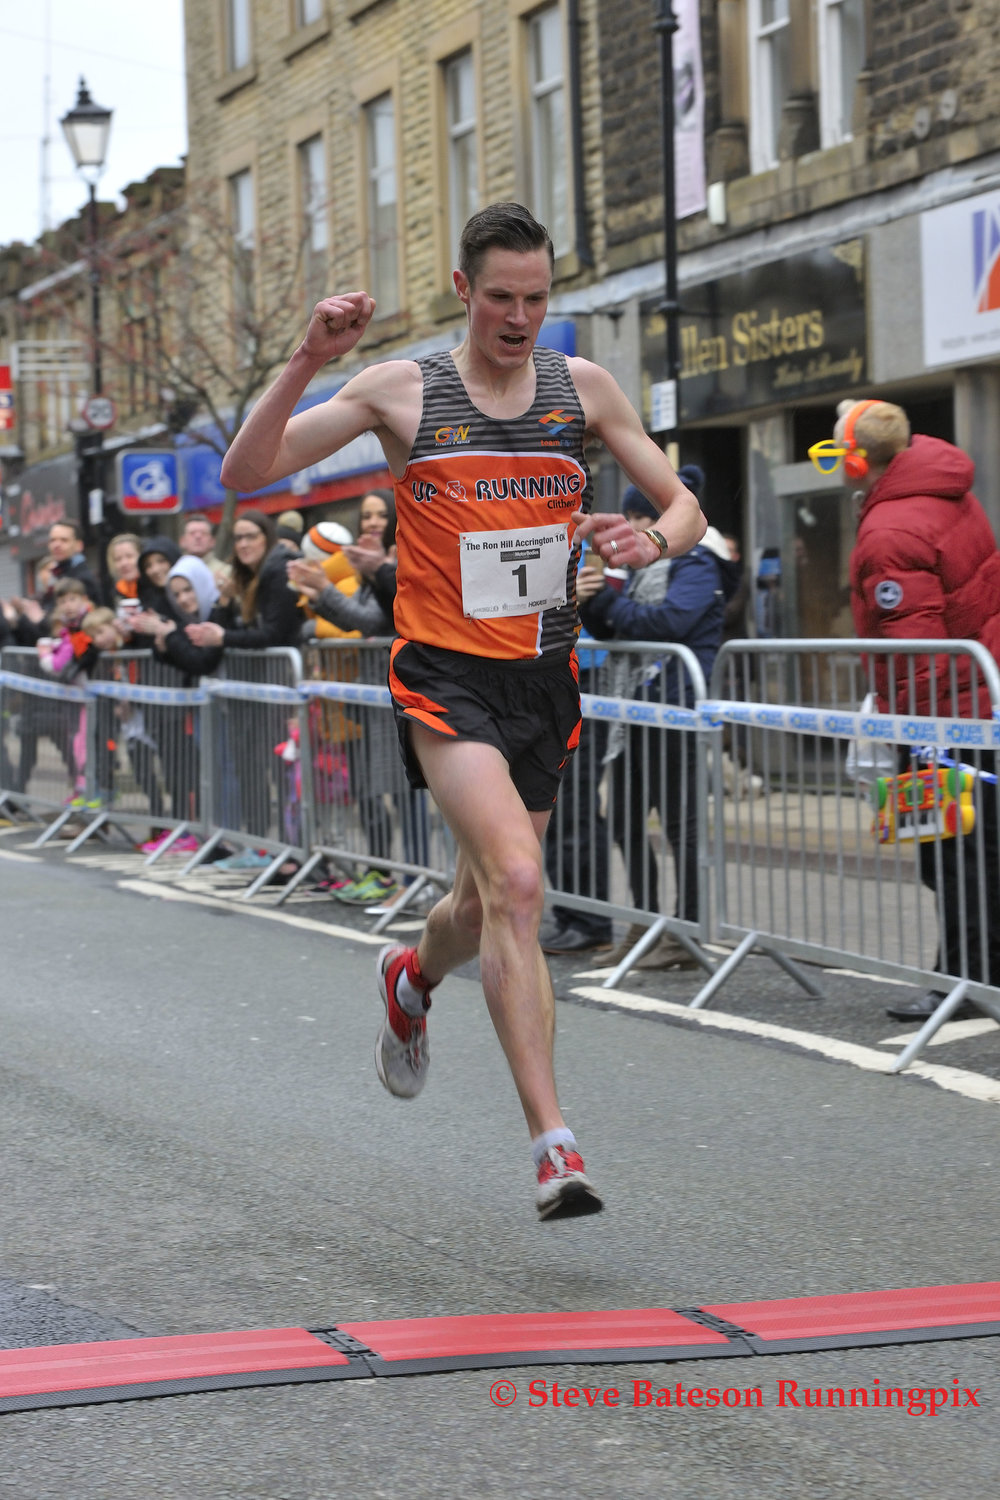 Live results appear online instantly when a runner crosses the finish line. (Ron Hill Accrington 10k 2017)